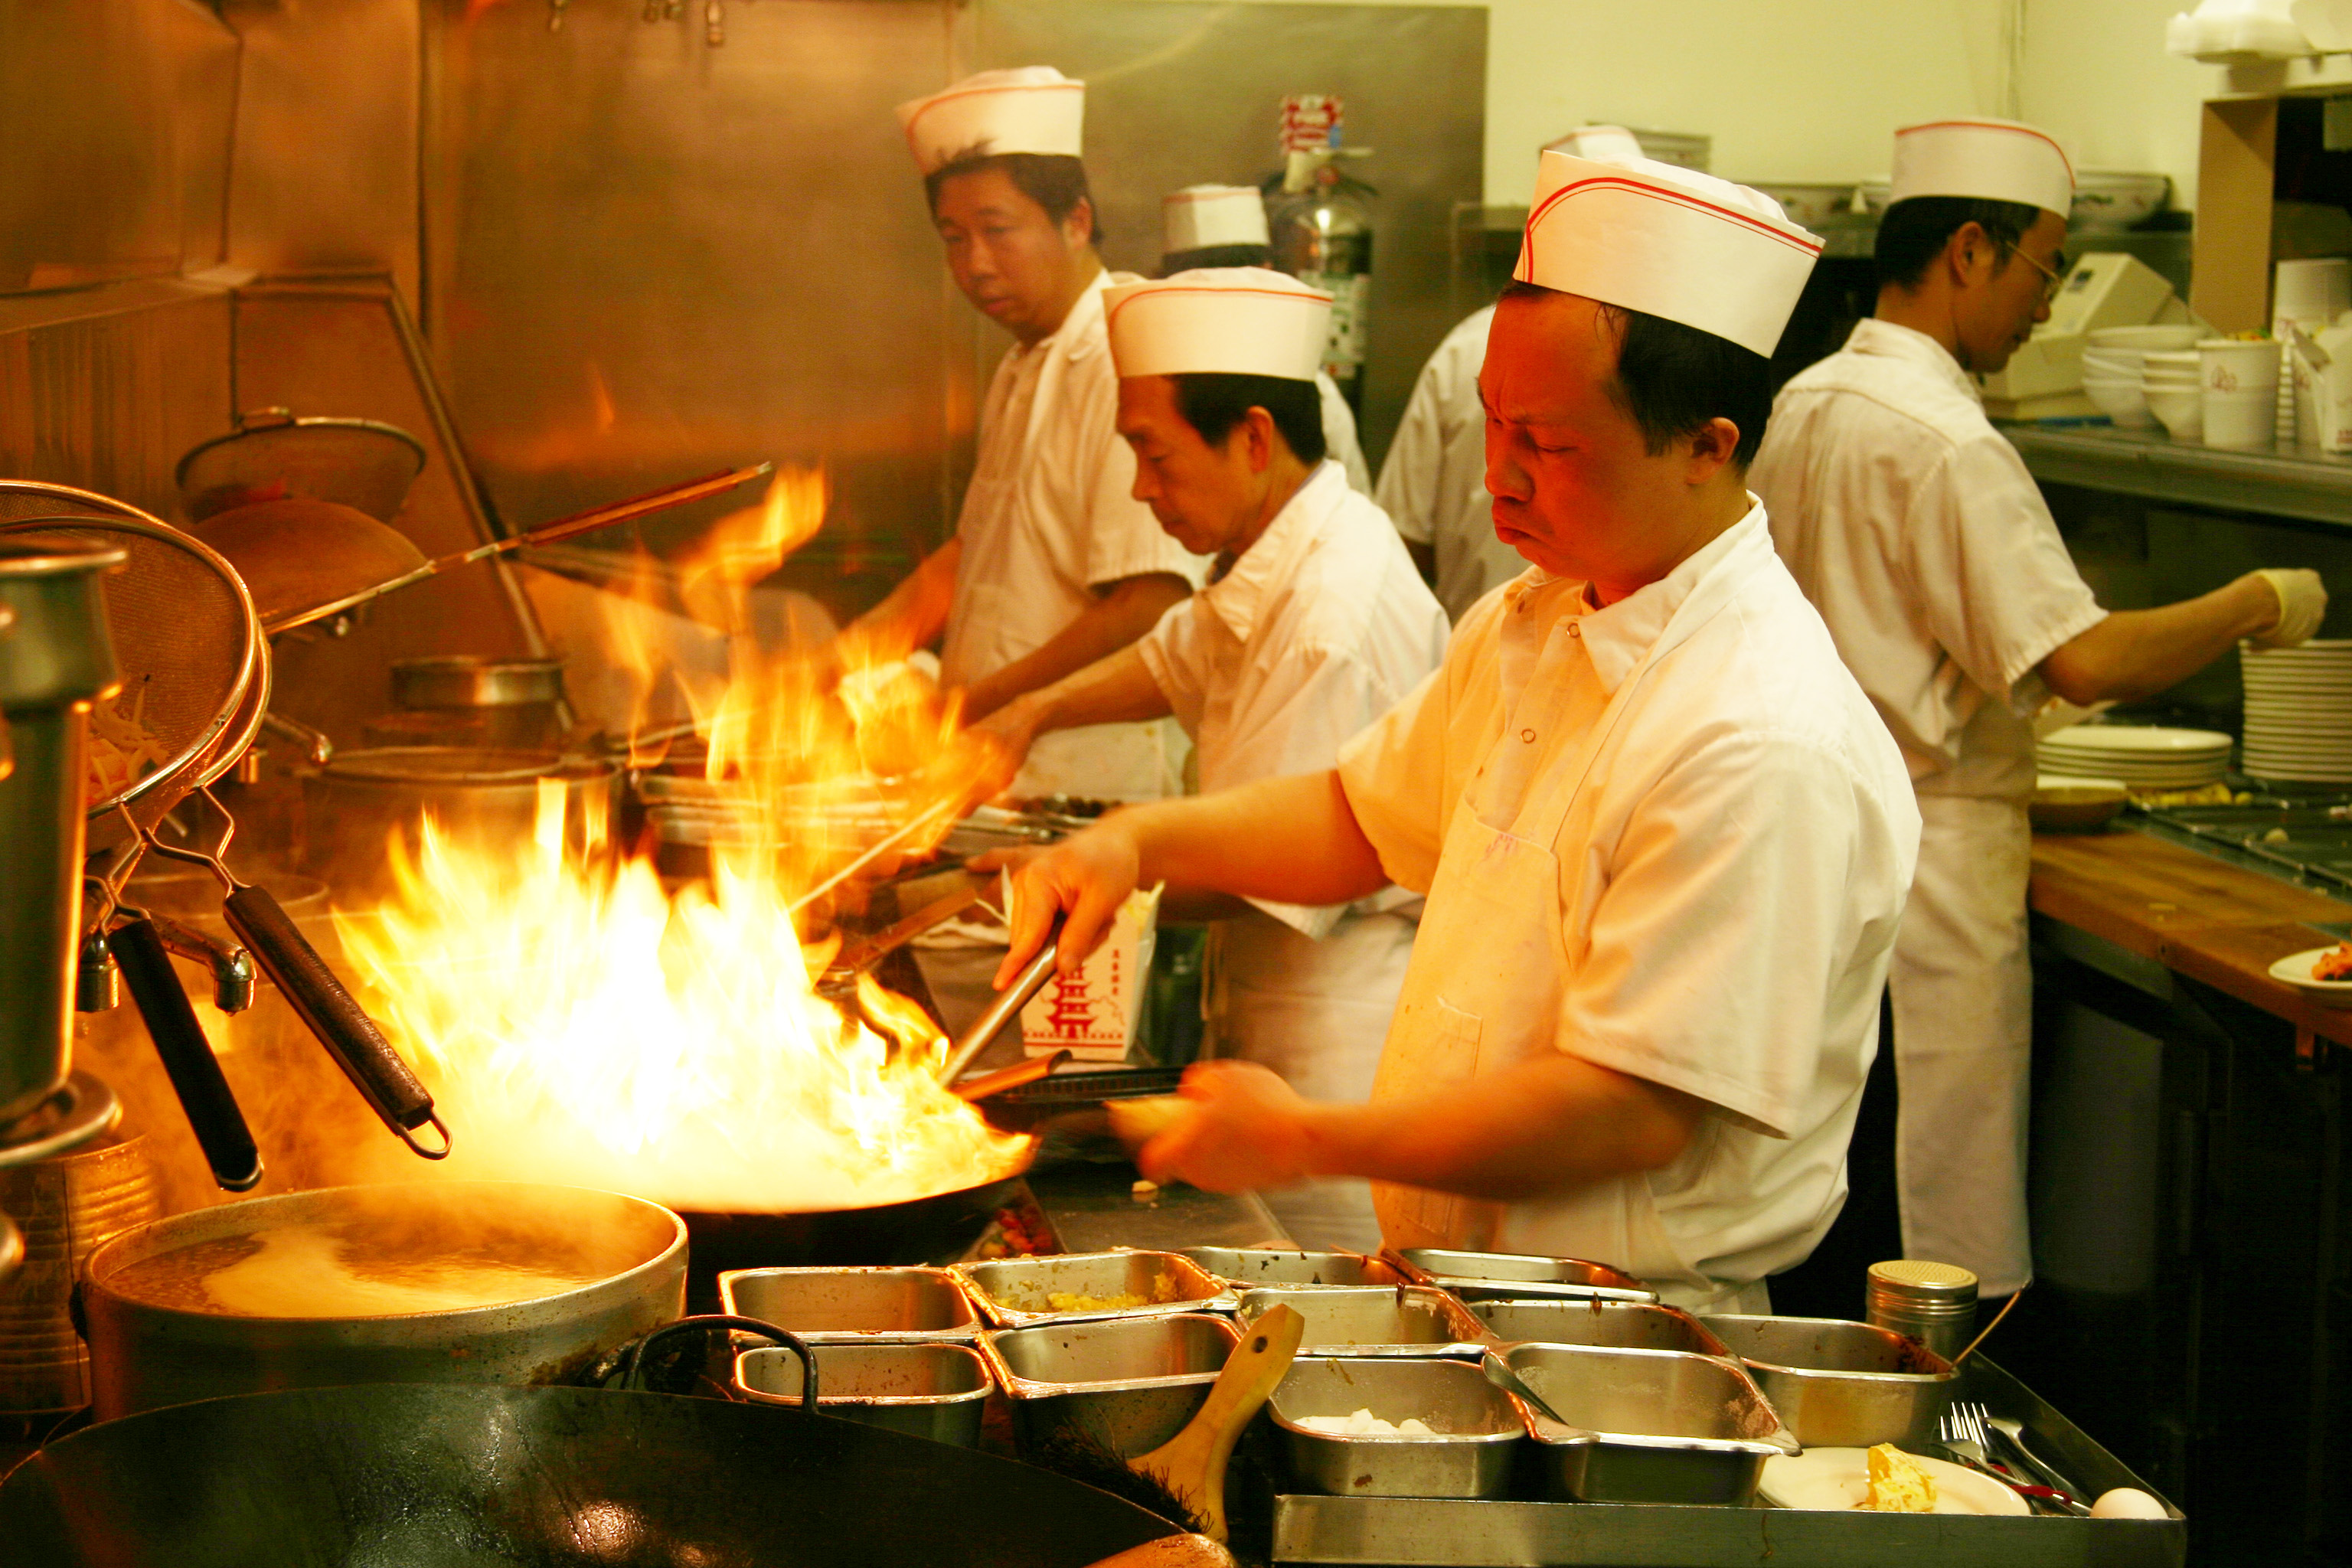 Flaming_wok_by_KellyB_in_Bountiful,_Utah.jpg